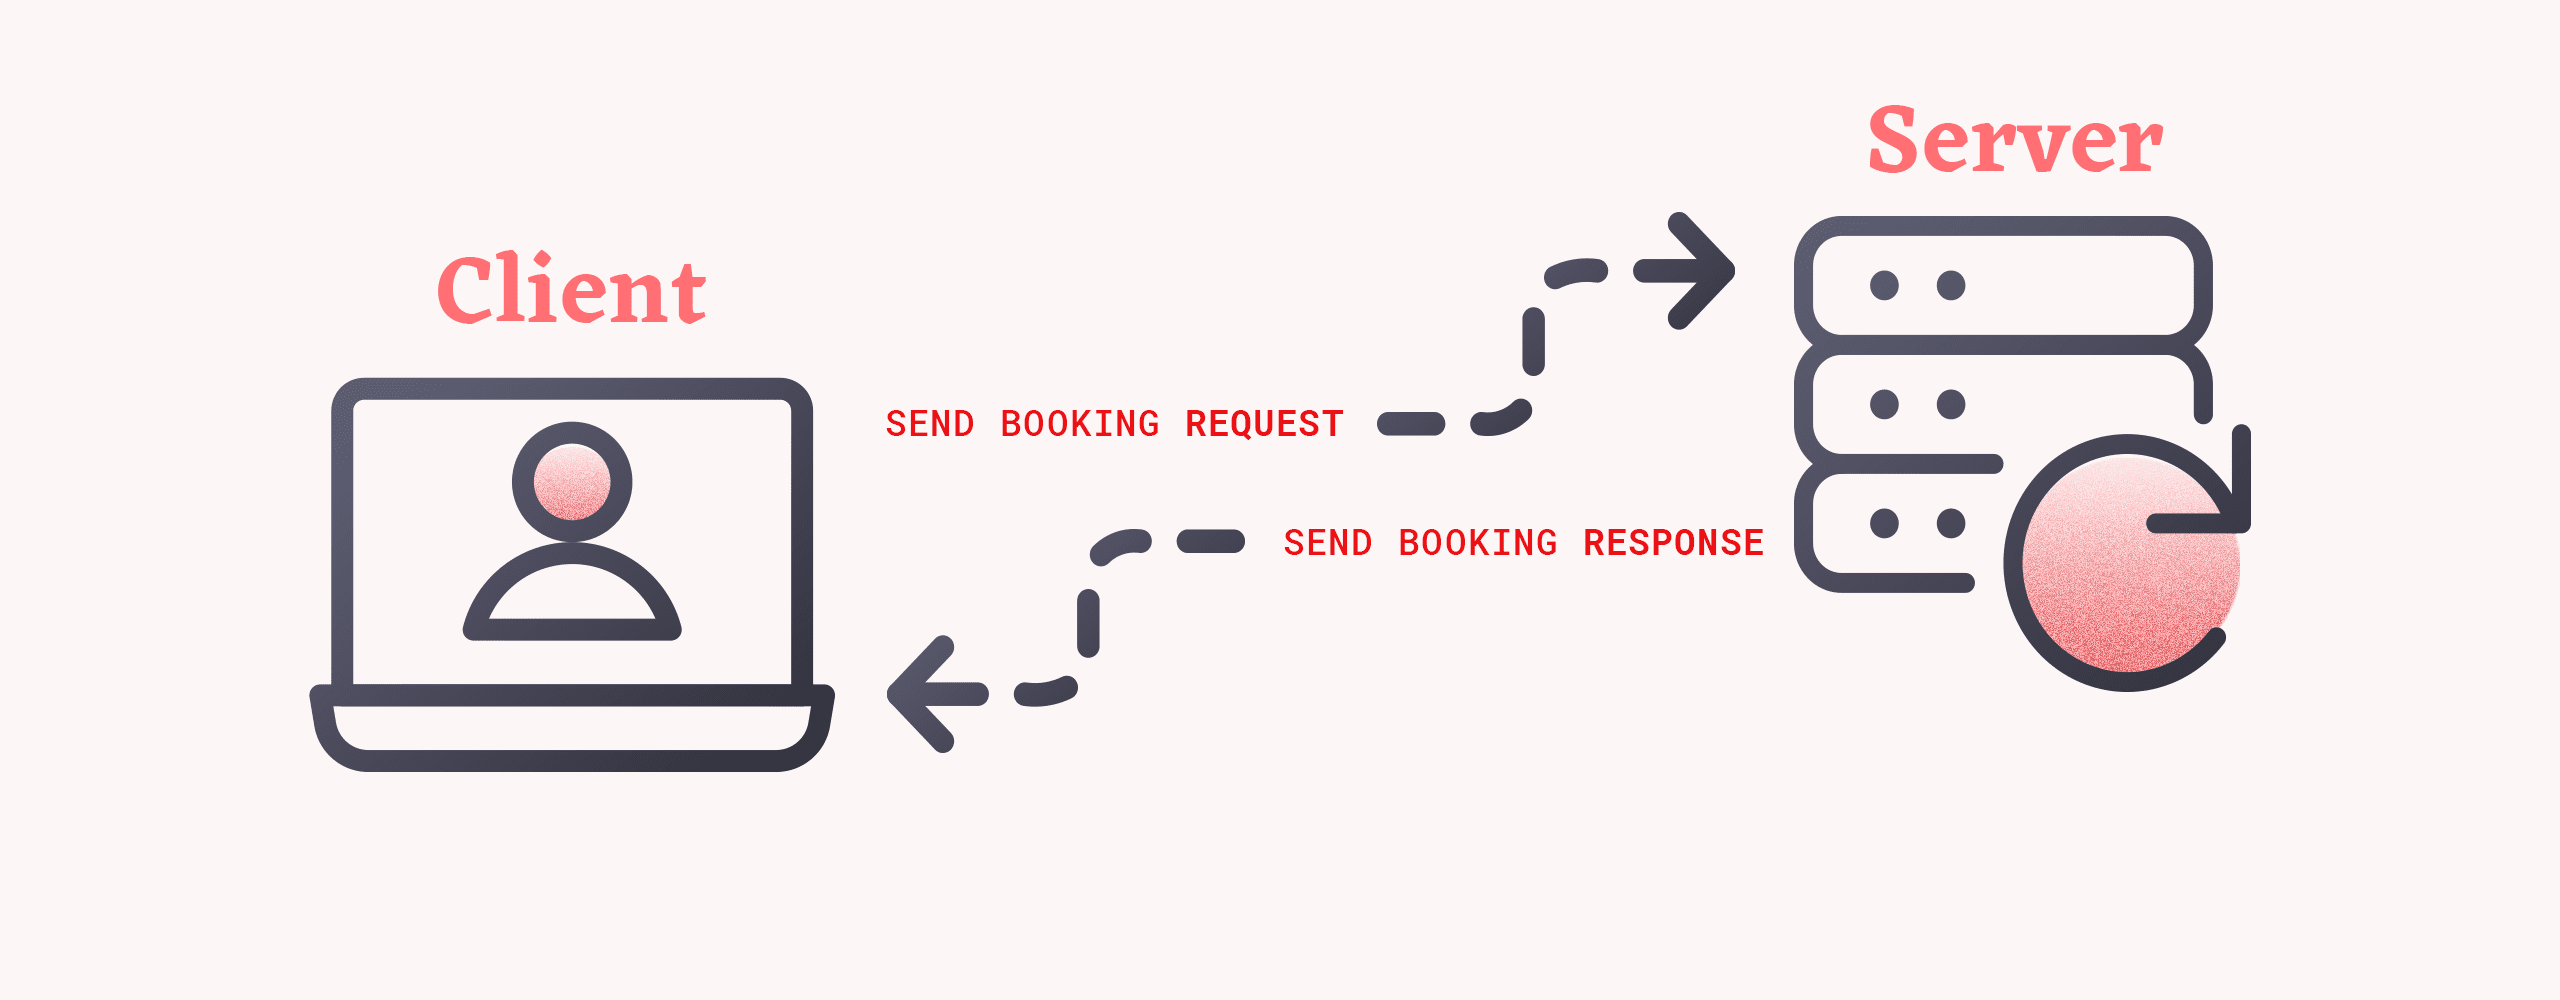 Synchronous processing for booking requests